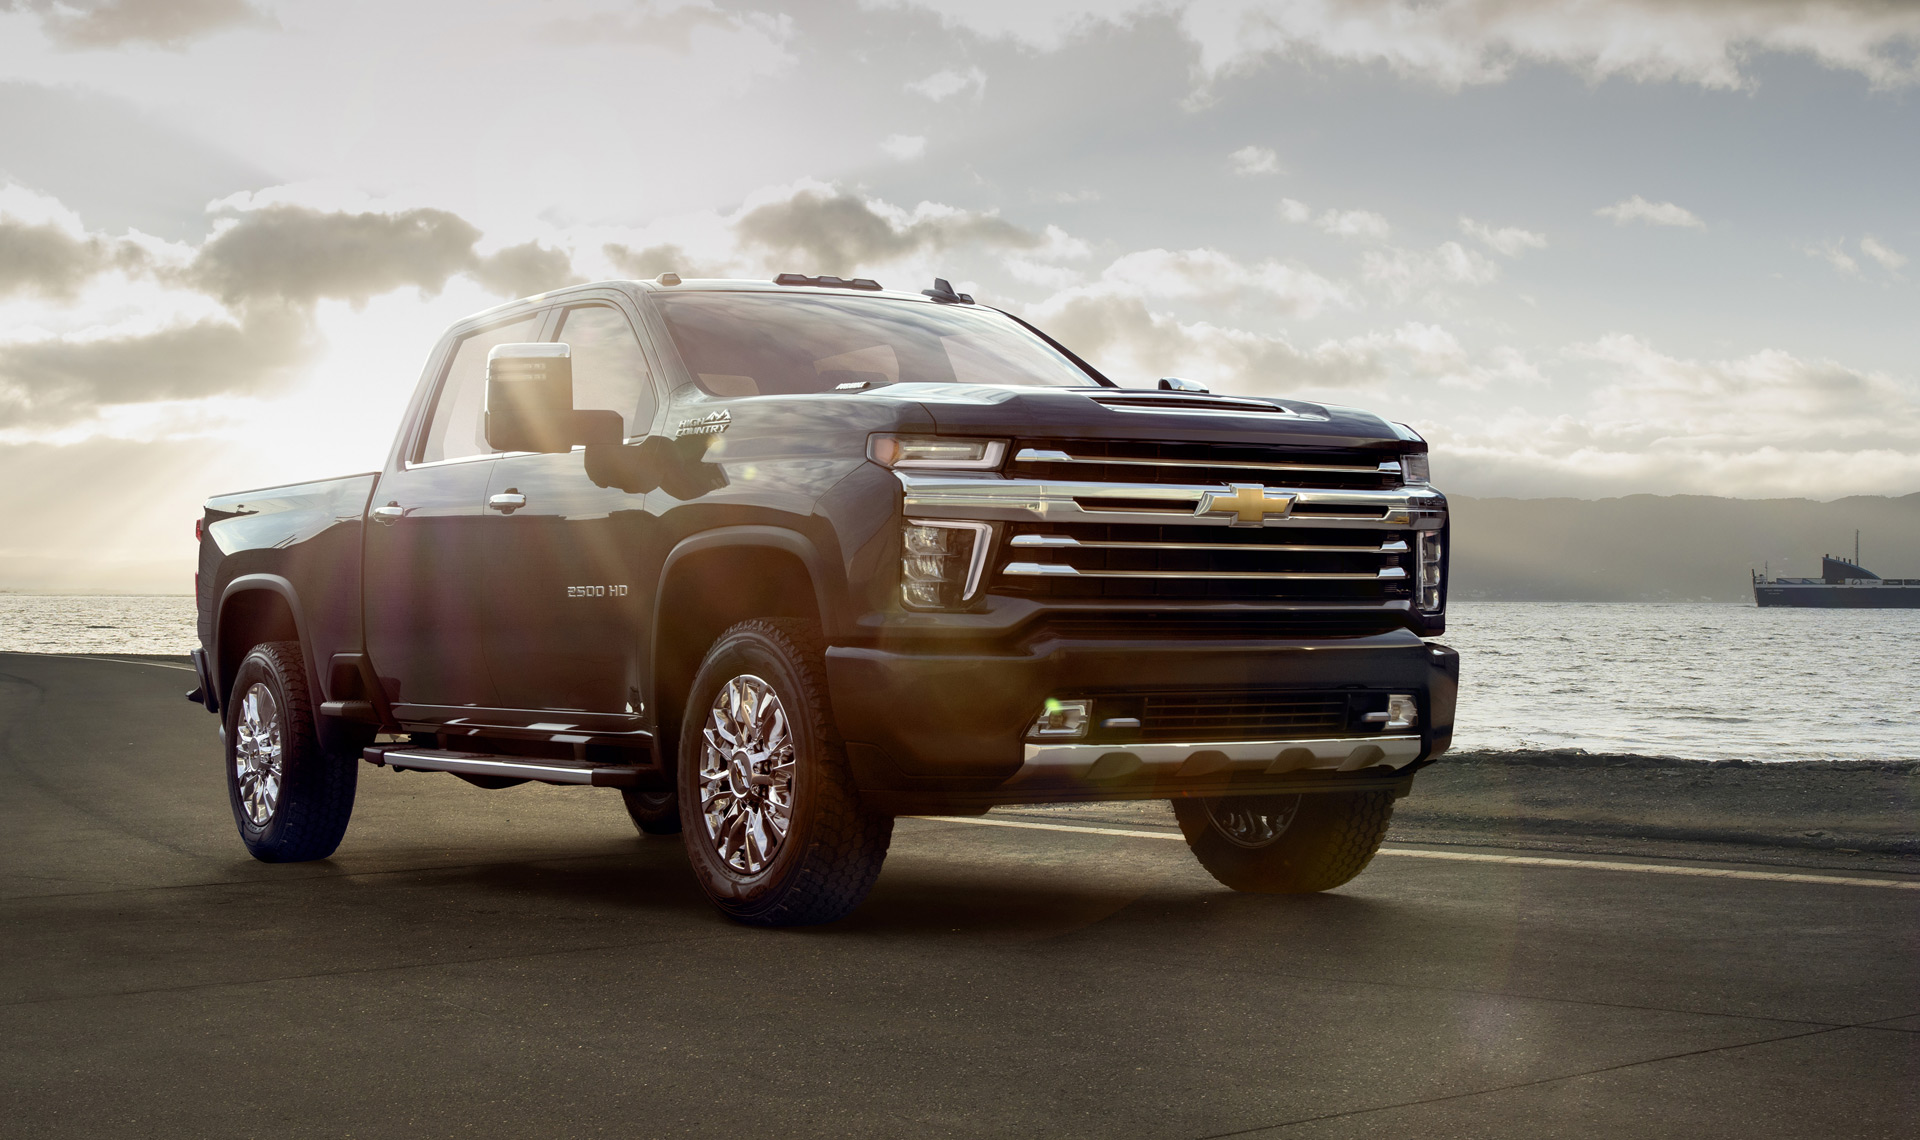 77 All New 2020 Silverado 1500 2500 Hd Configurations